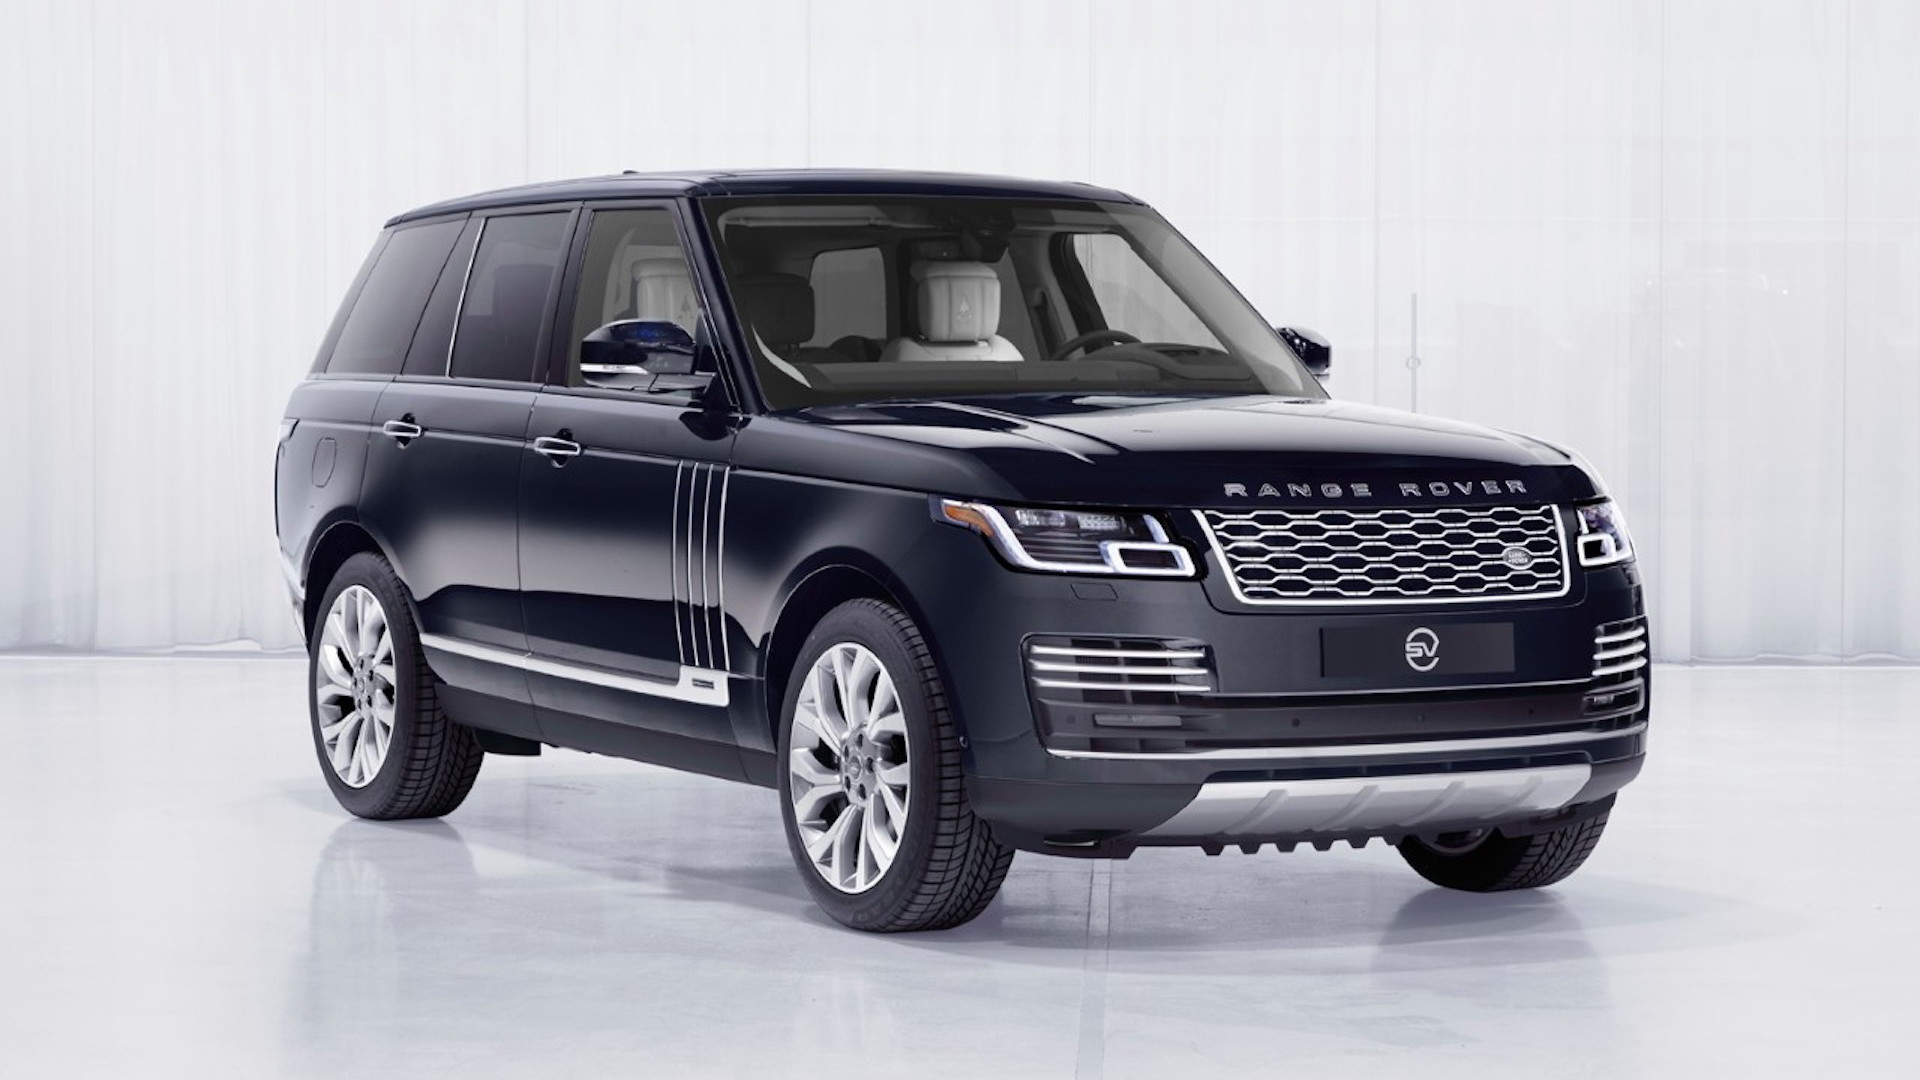 Land Rover Range Rover Astronaut Edition Is For Future